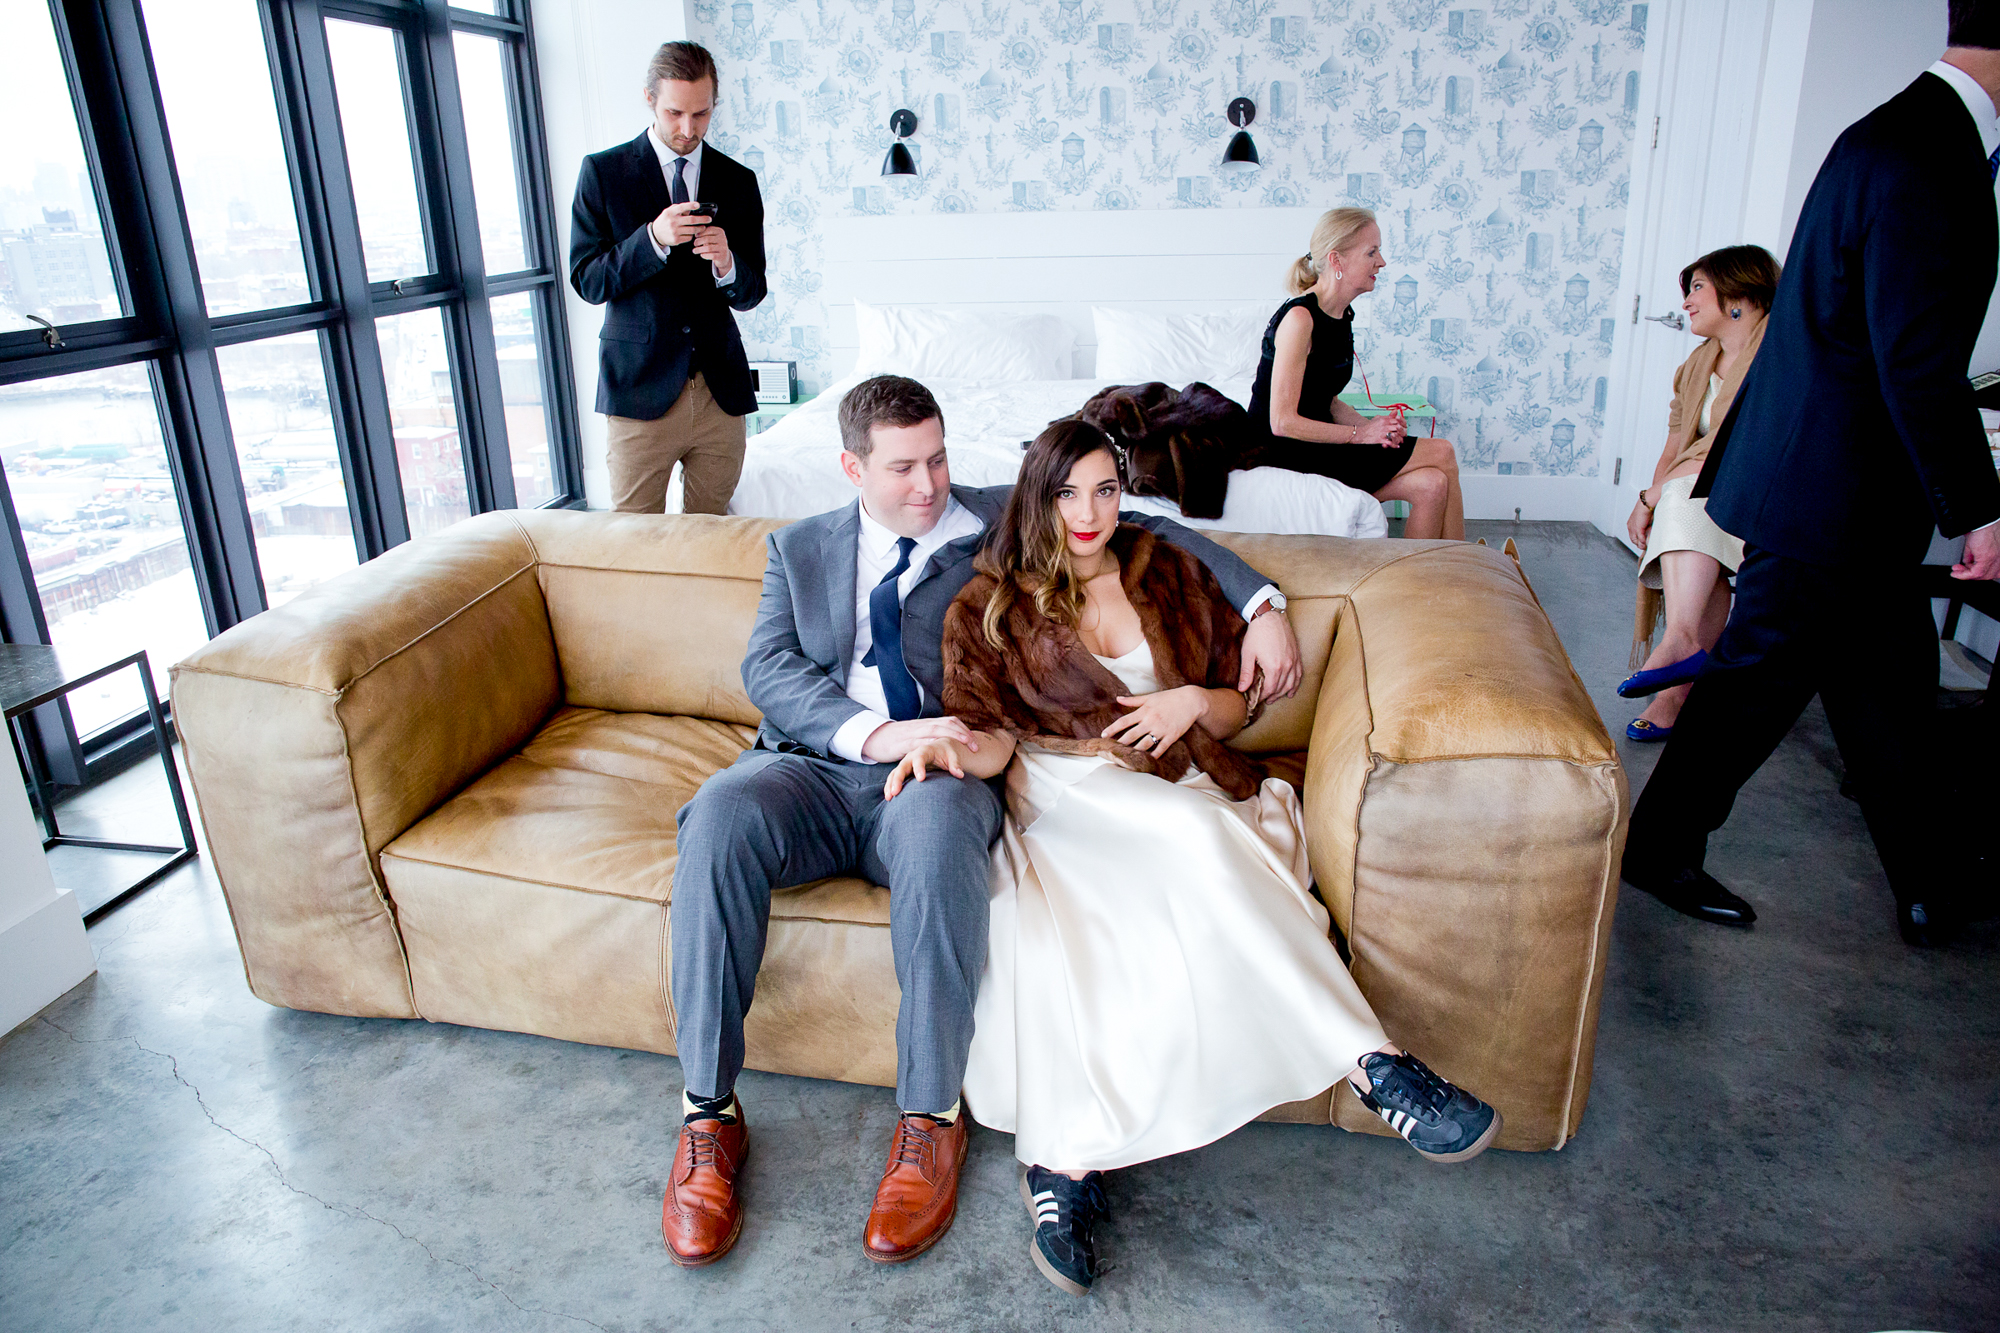 009_CarlyGaebe_SteadfastStudio_WeddingPhotography_NewYorkCity_Brooklyn_WytheHotel_Retro.jpg